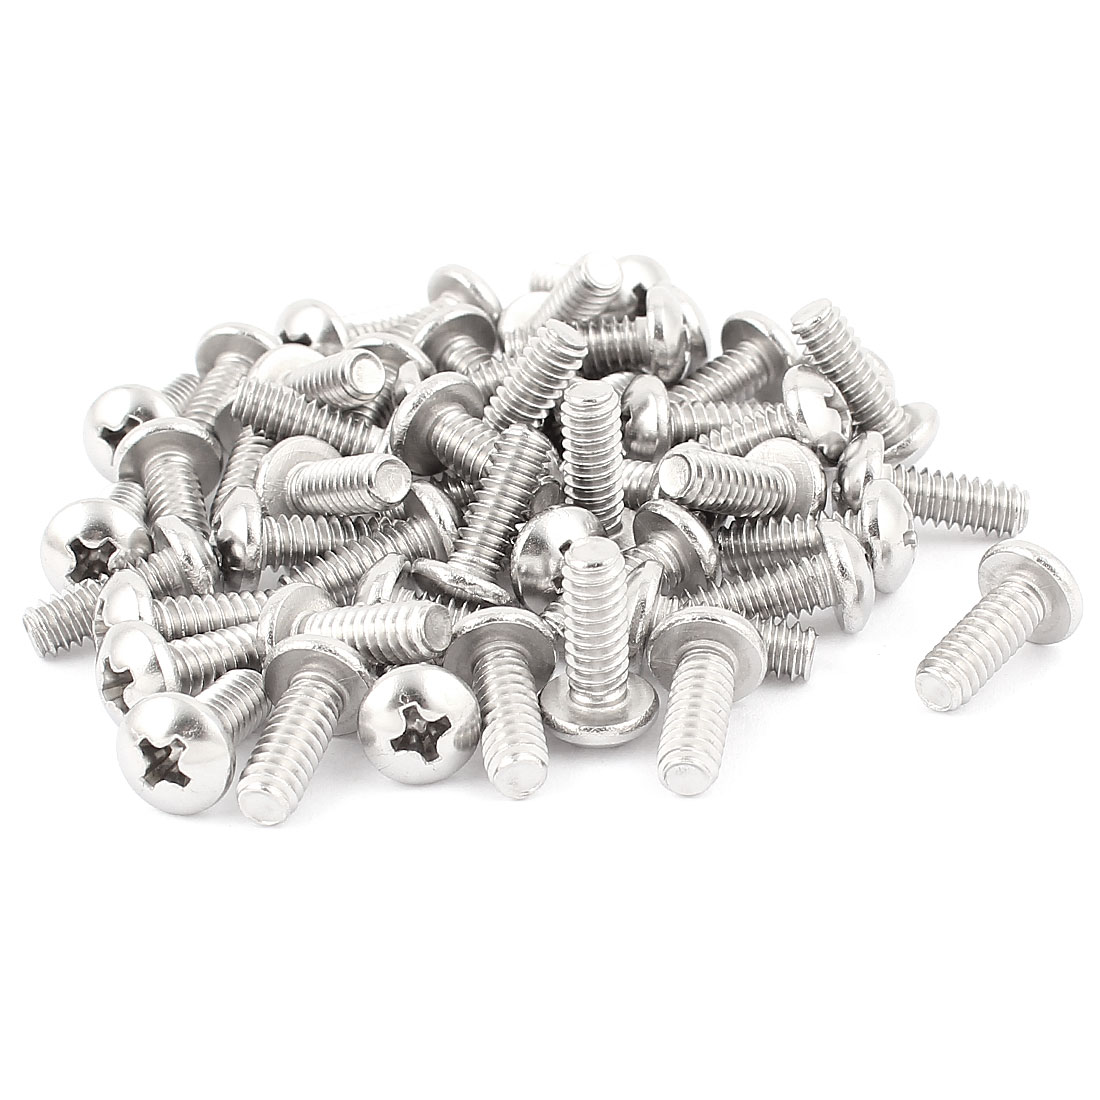 "50 Pcs 10#-24 x 1/2"" Stainless Steel Phillips Truss Head Bolts Machine Screws"